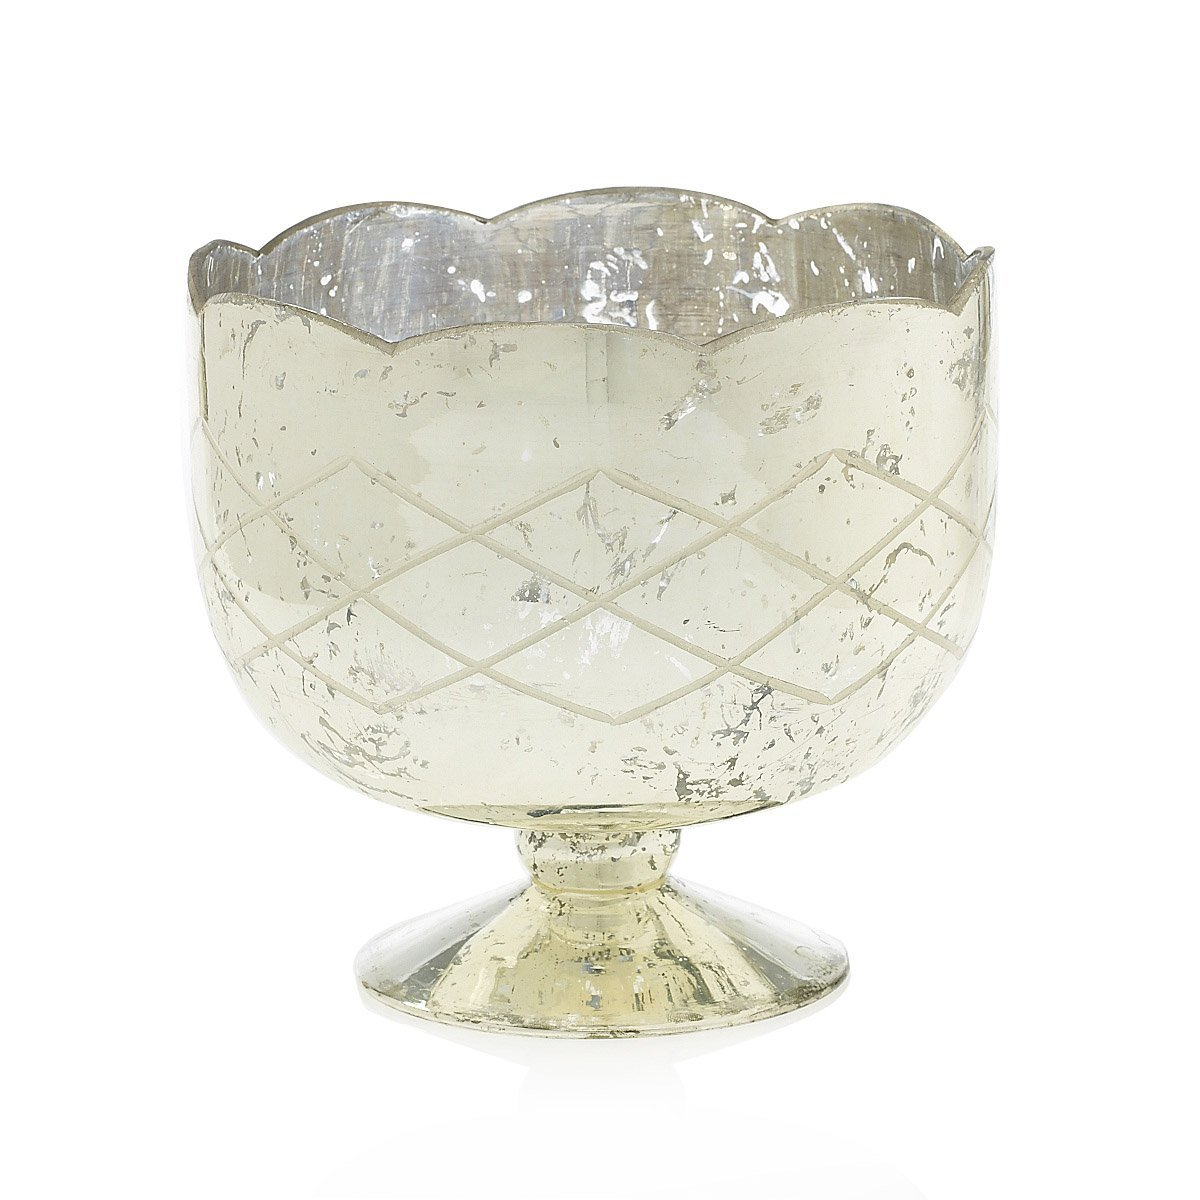 Mercury Glass Compote Dish, Bowl with Pedestal, 7.25 in. tall, Silver Accent Decor Inc.